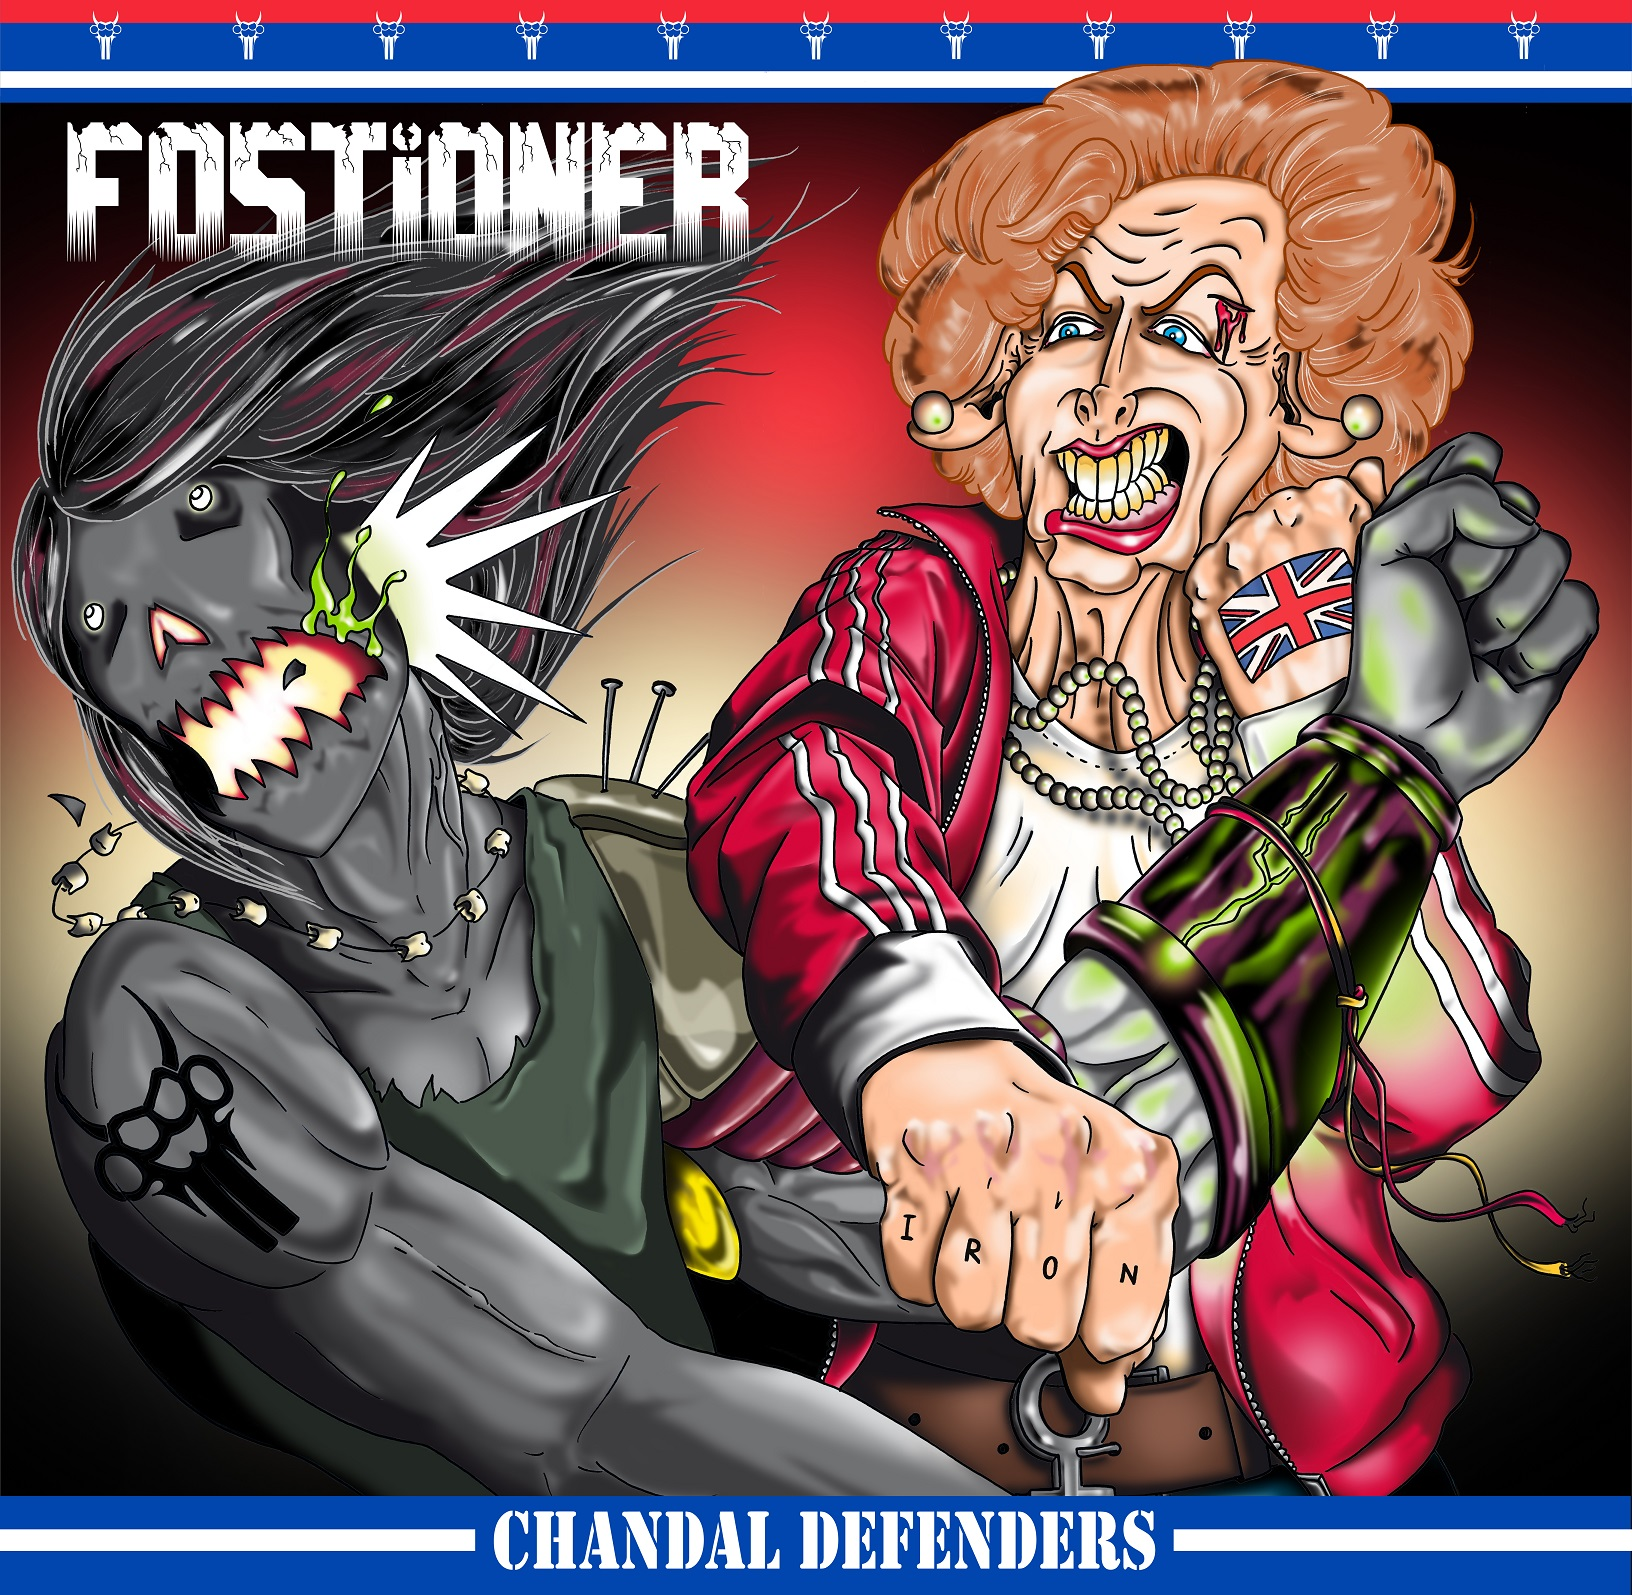 Chandal Defenders - FOSTIONER